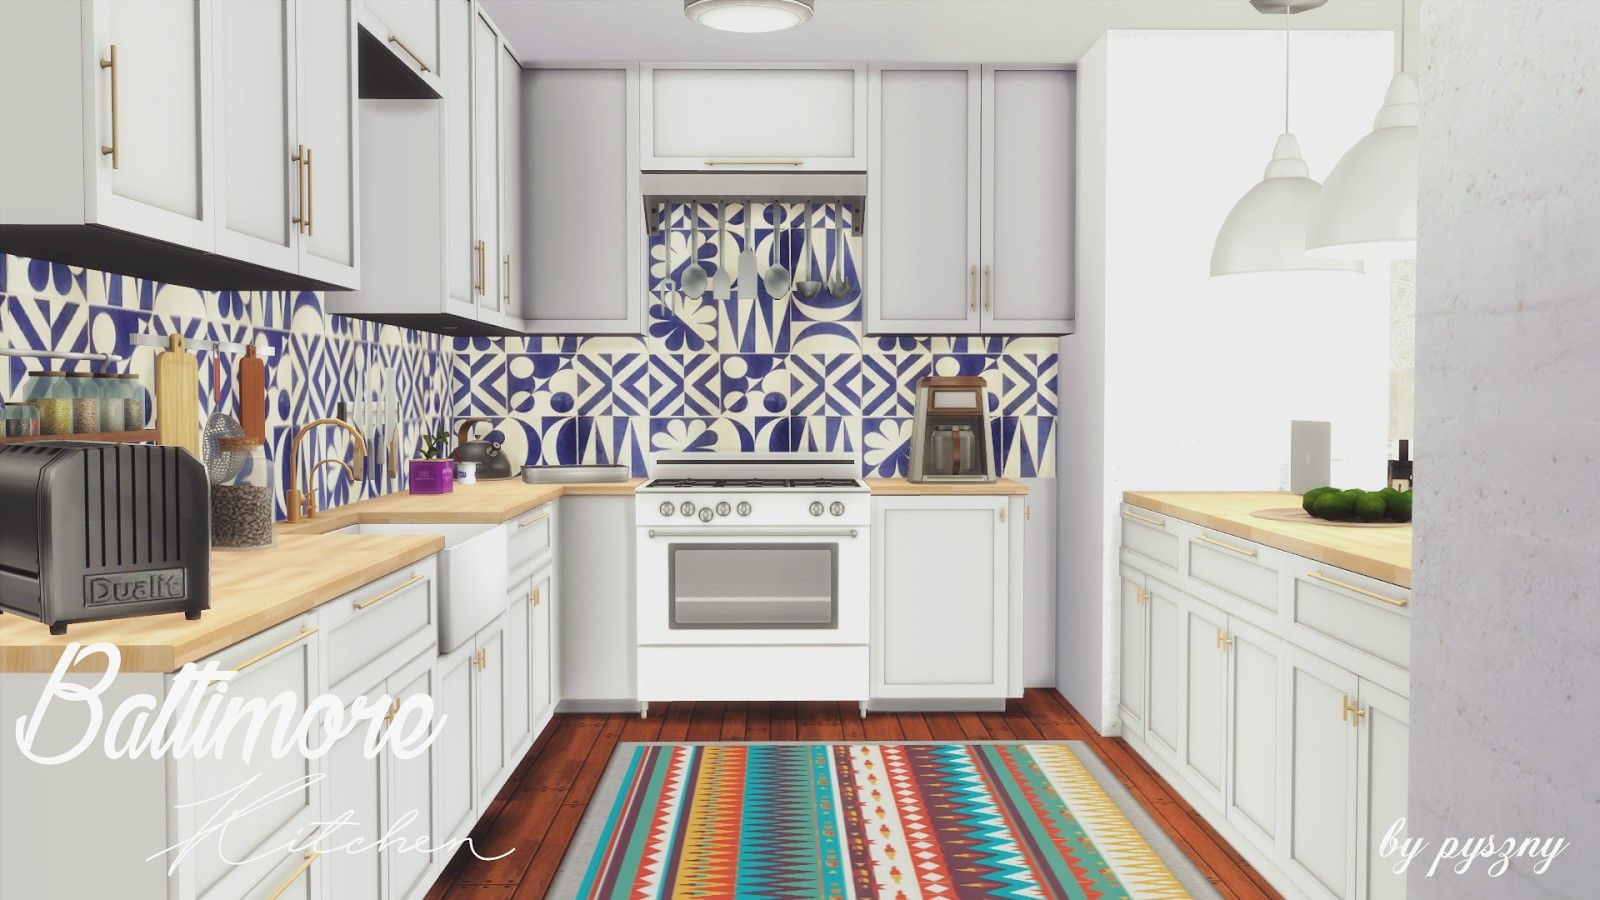 Pin By L K On Sims4 In 2020 Kitchen Cabinets And Flooring Used Kitchen Cabinets Kitchen Cabinets For Sale